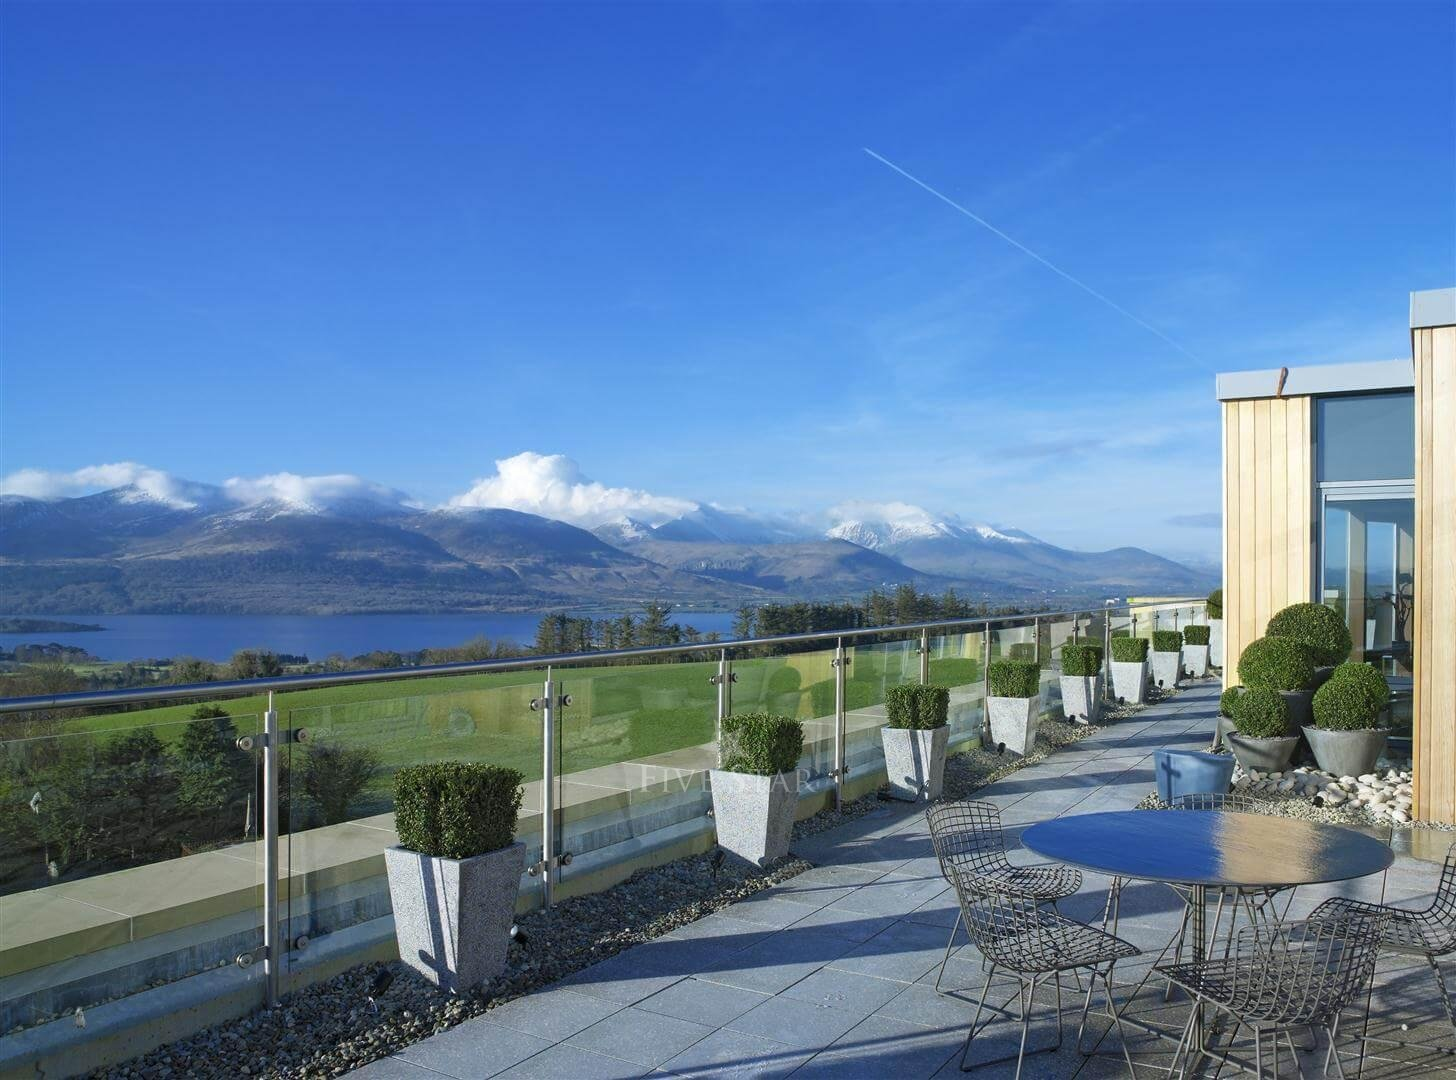 Aghadoe Heights Hotel photo 3